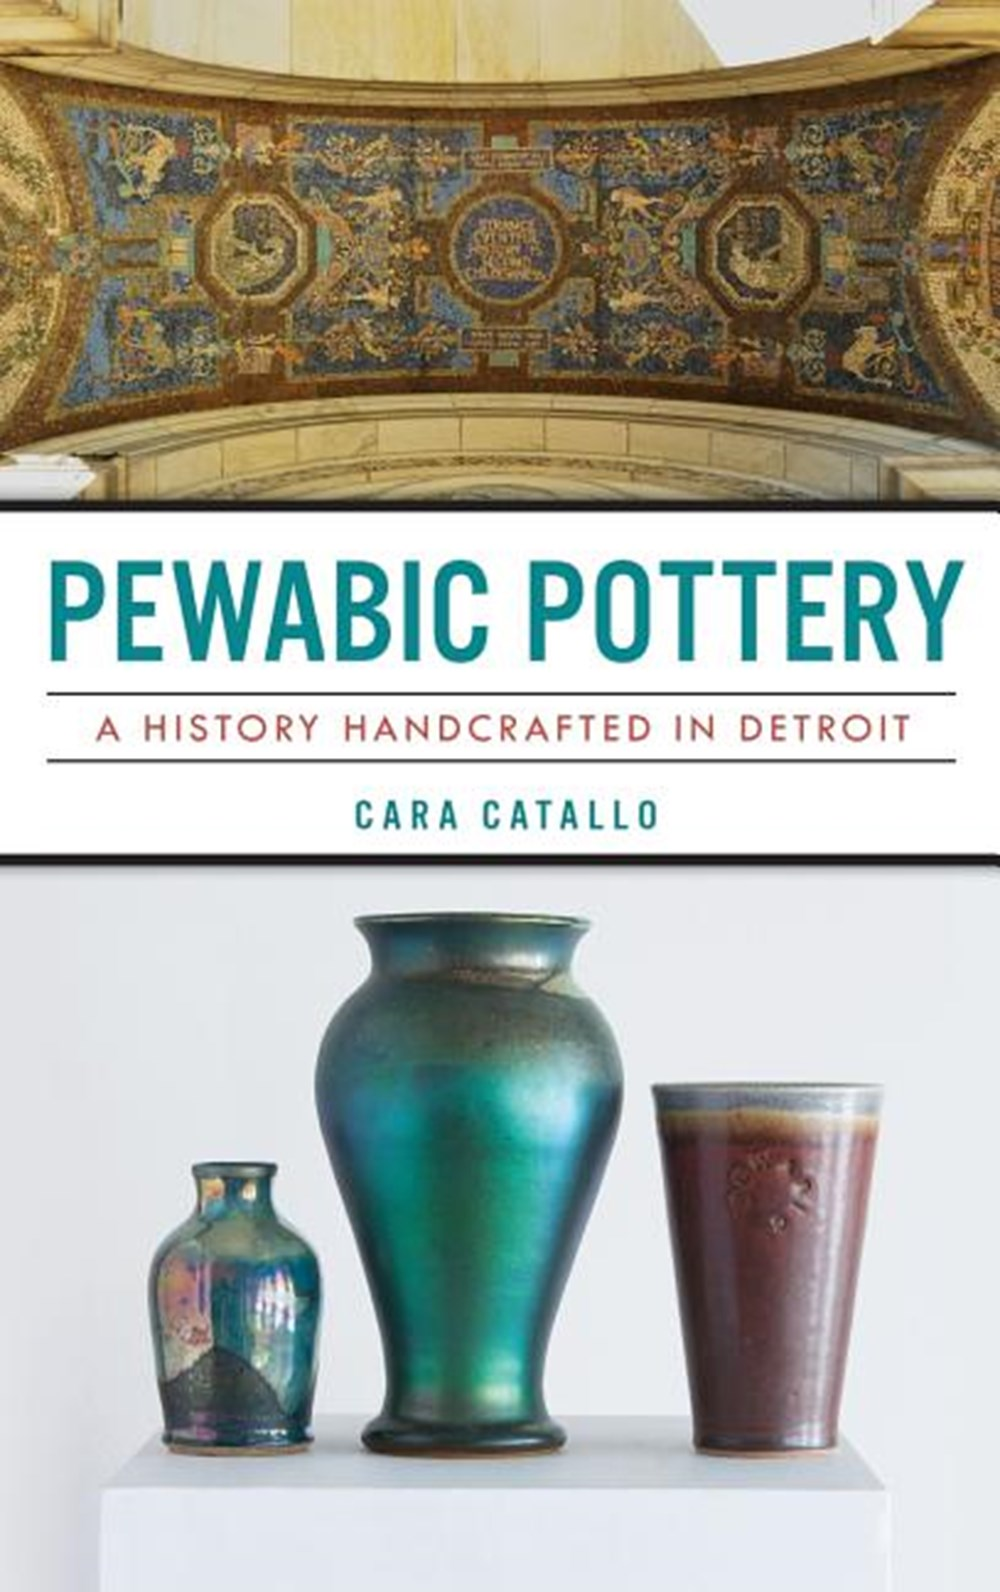 Pewabic Pottery A History Handcrafted in Detroit